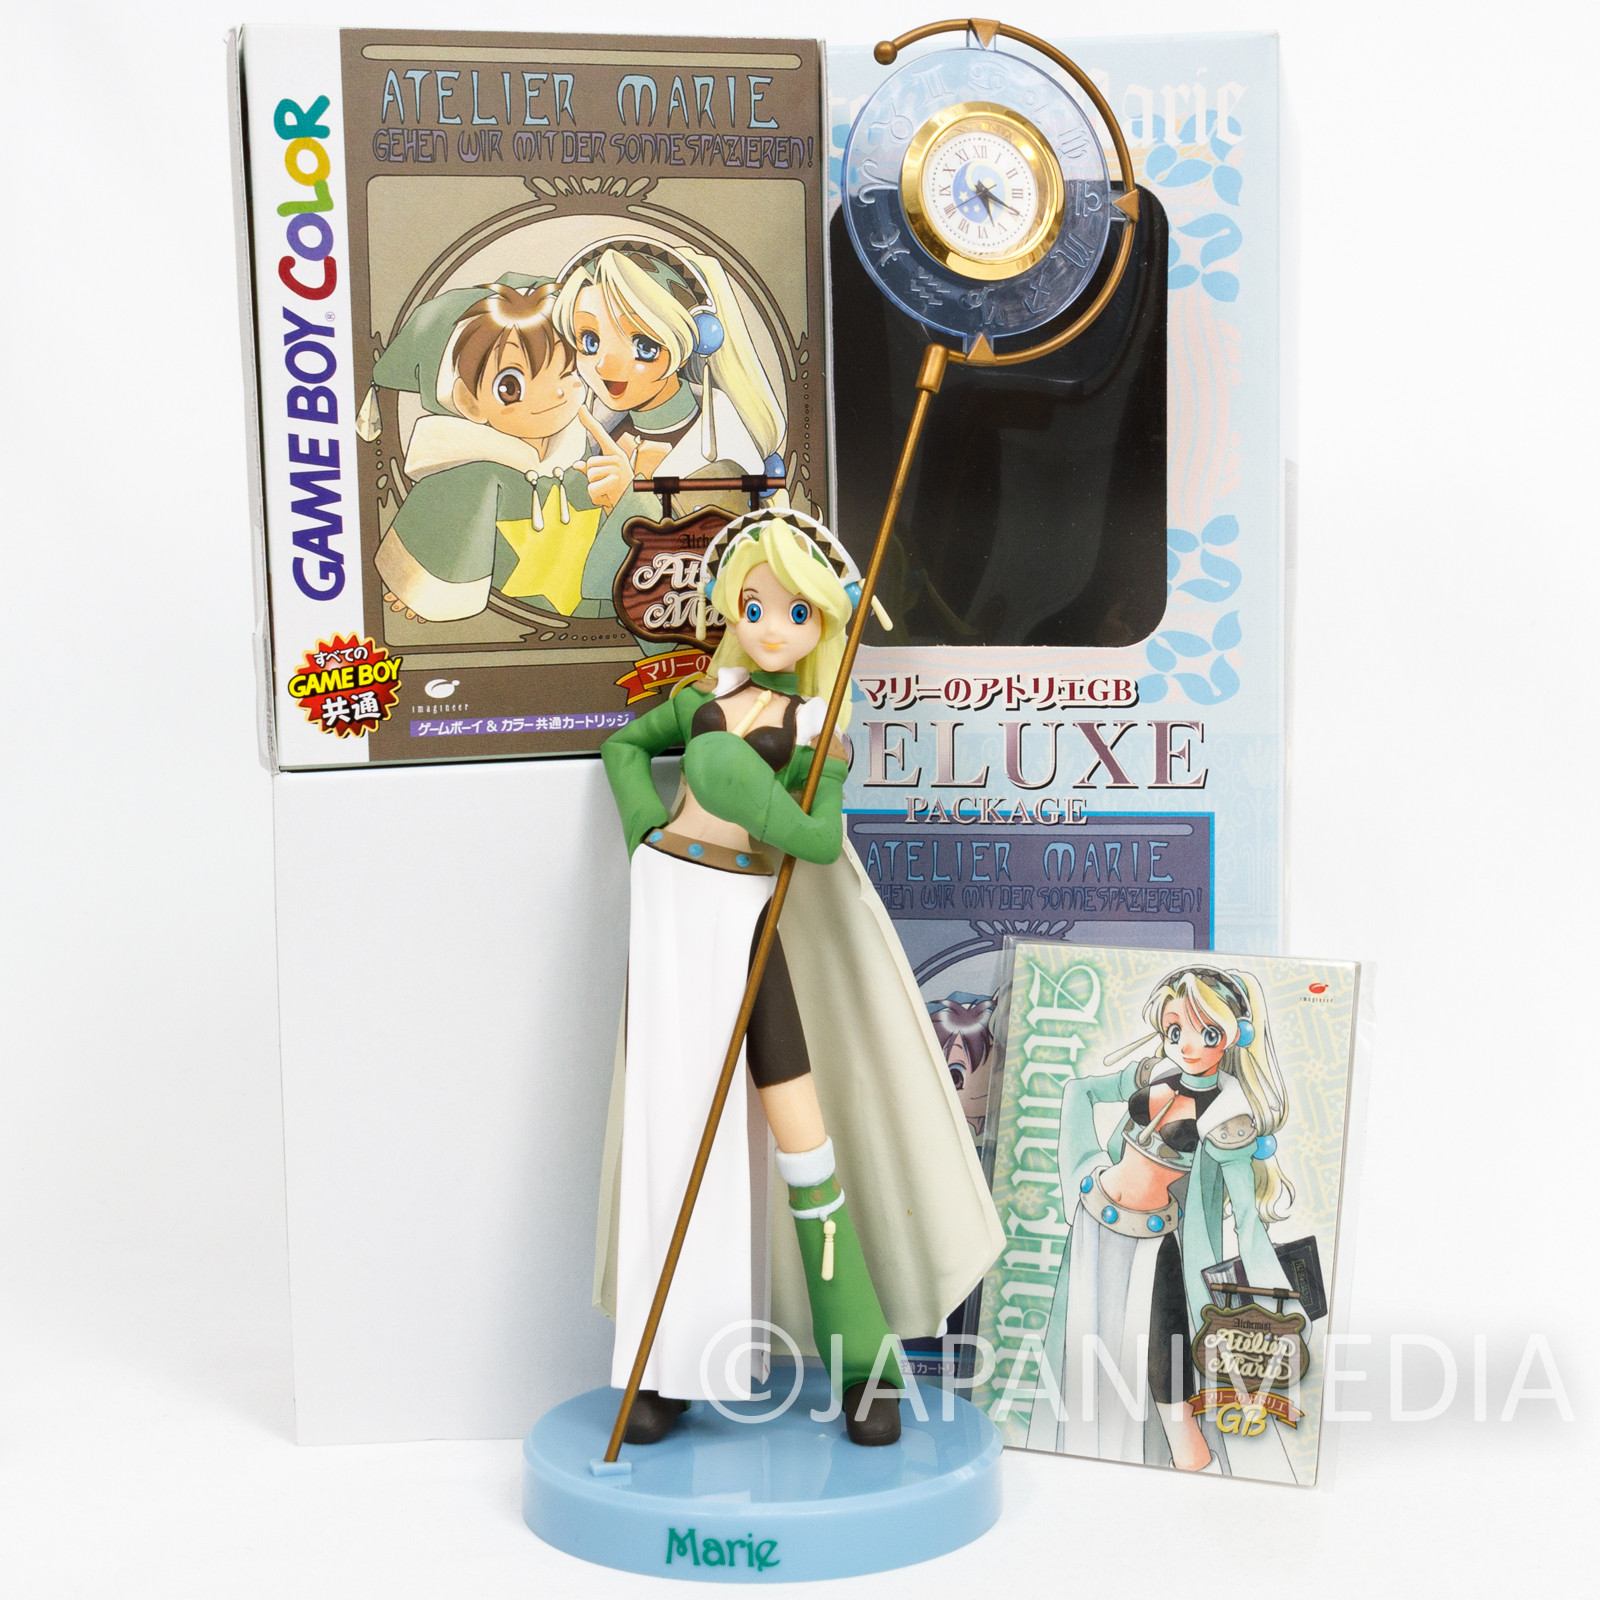 Atelier Marie GB Special Pack: Figure + Game Boy Color Cartridge + Trading Card